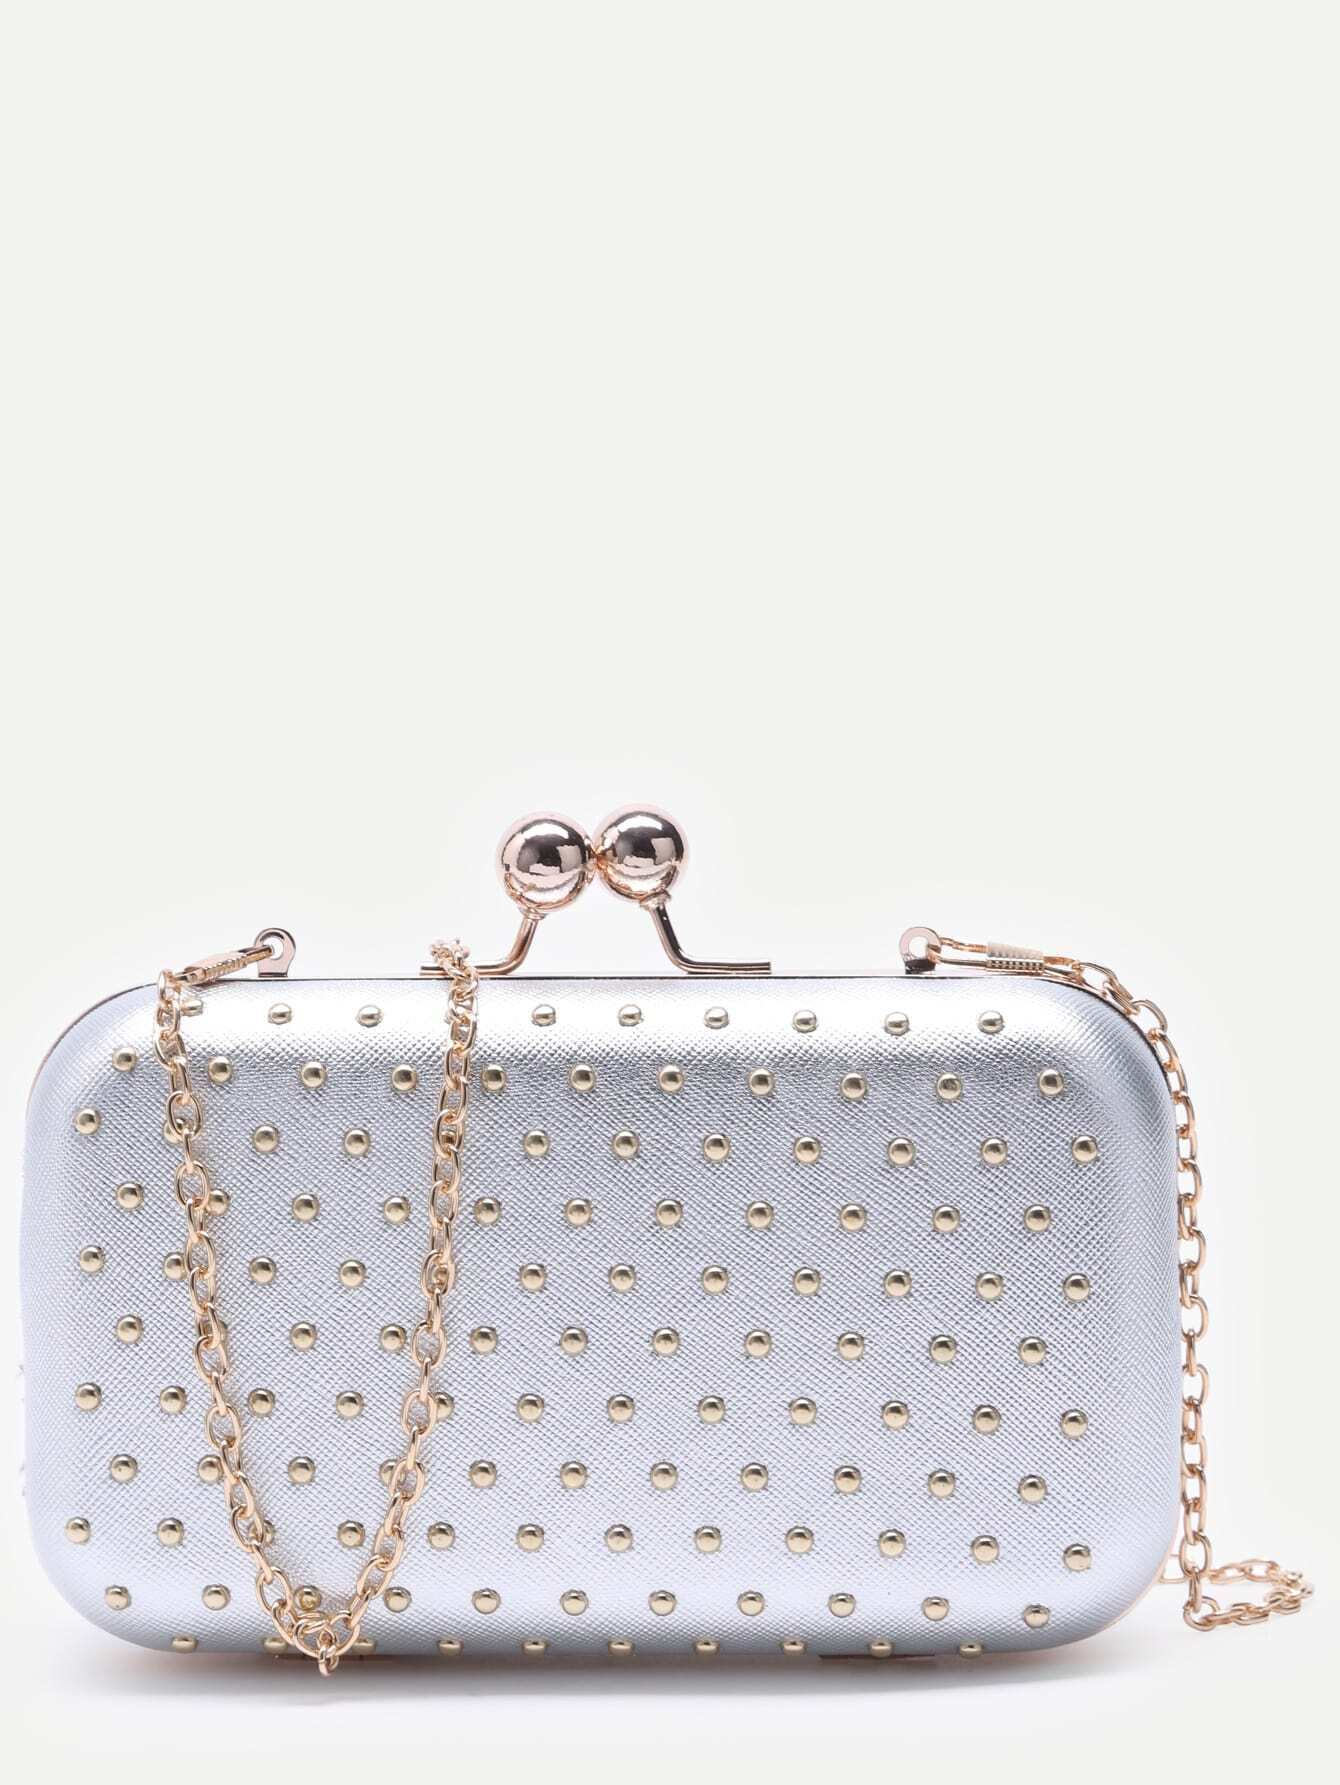 Silver Studded PU Evening Bag With Chain Image